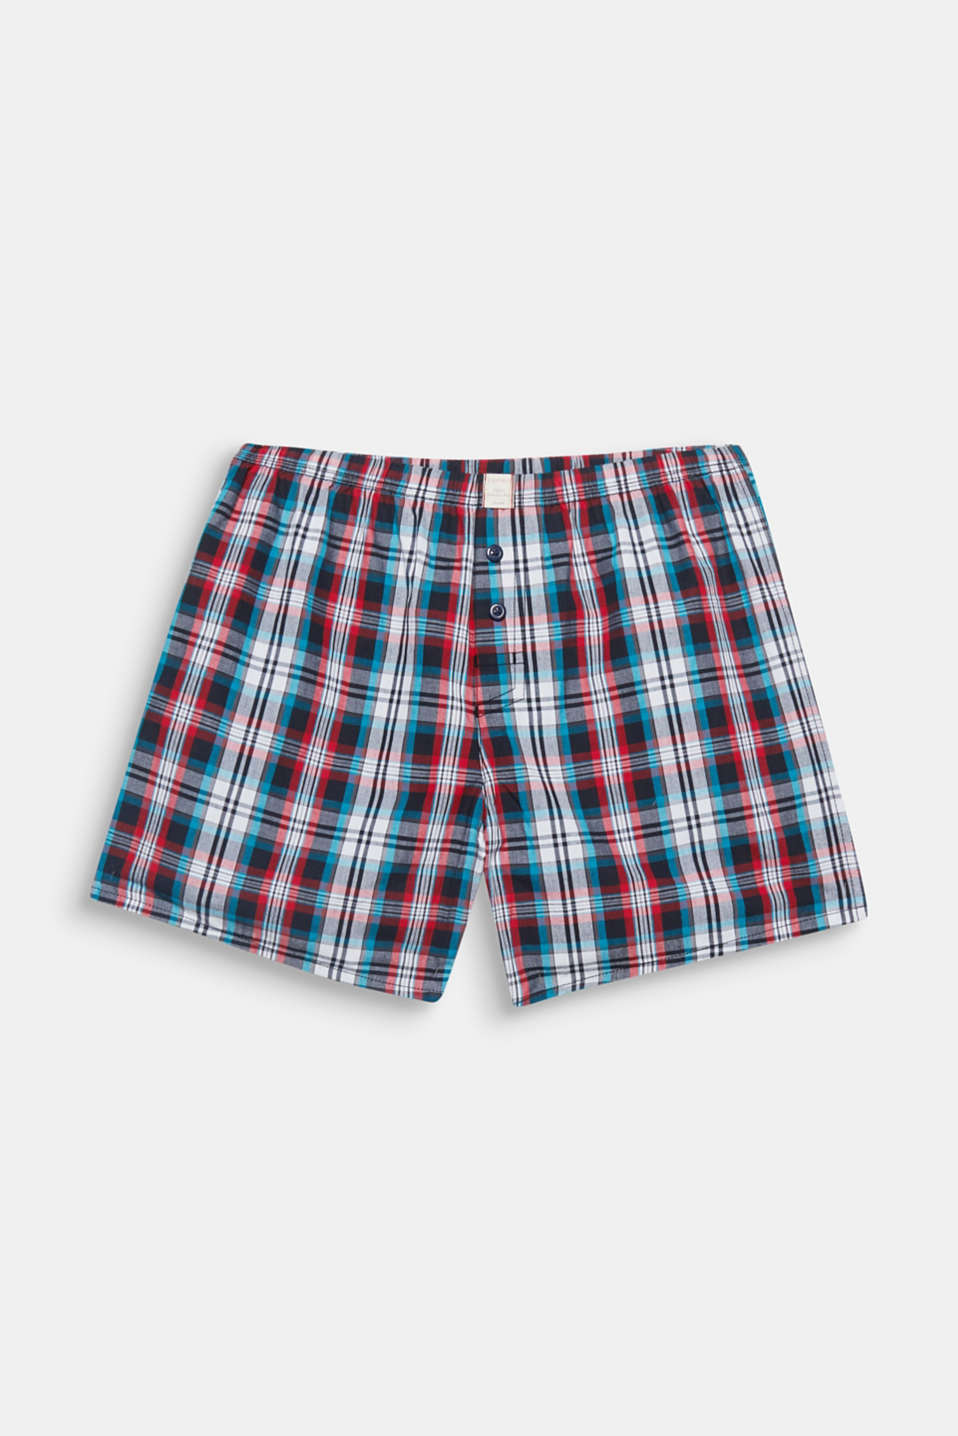 The colourful woven check pattern on lightweight cotton fabric gives these comfortable boxer shorts their special kick!